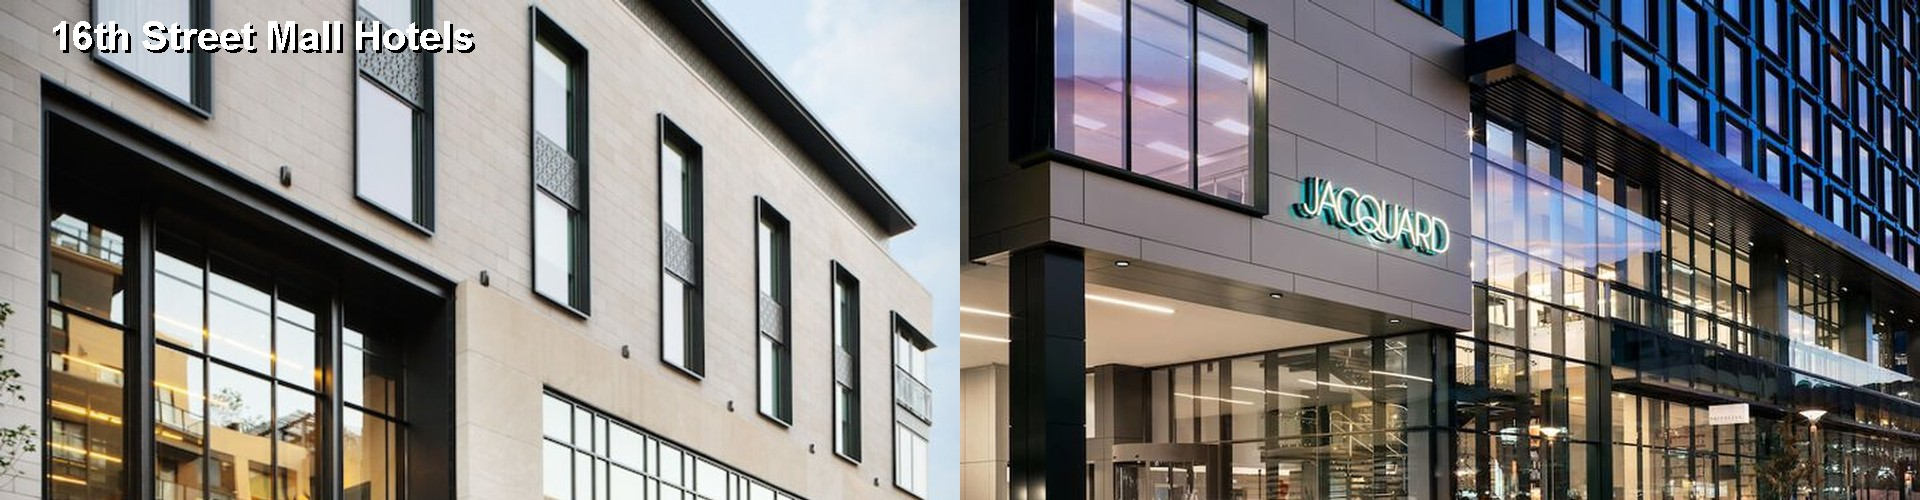 5 Best Hotels near 16th Street Mall